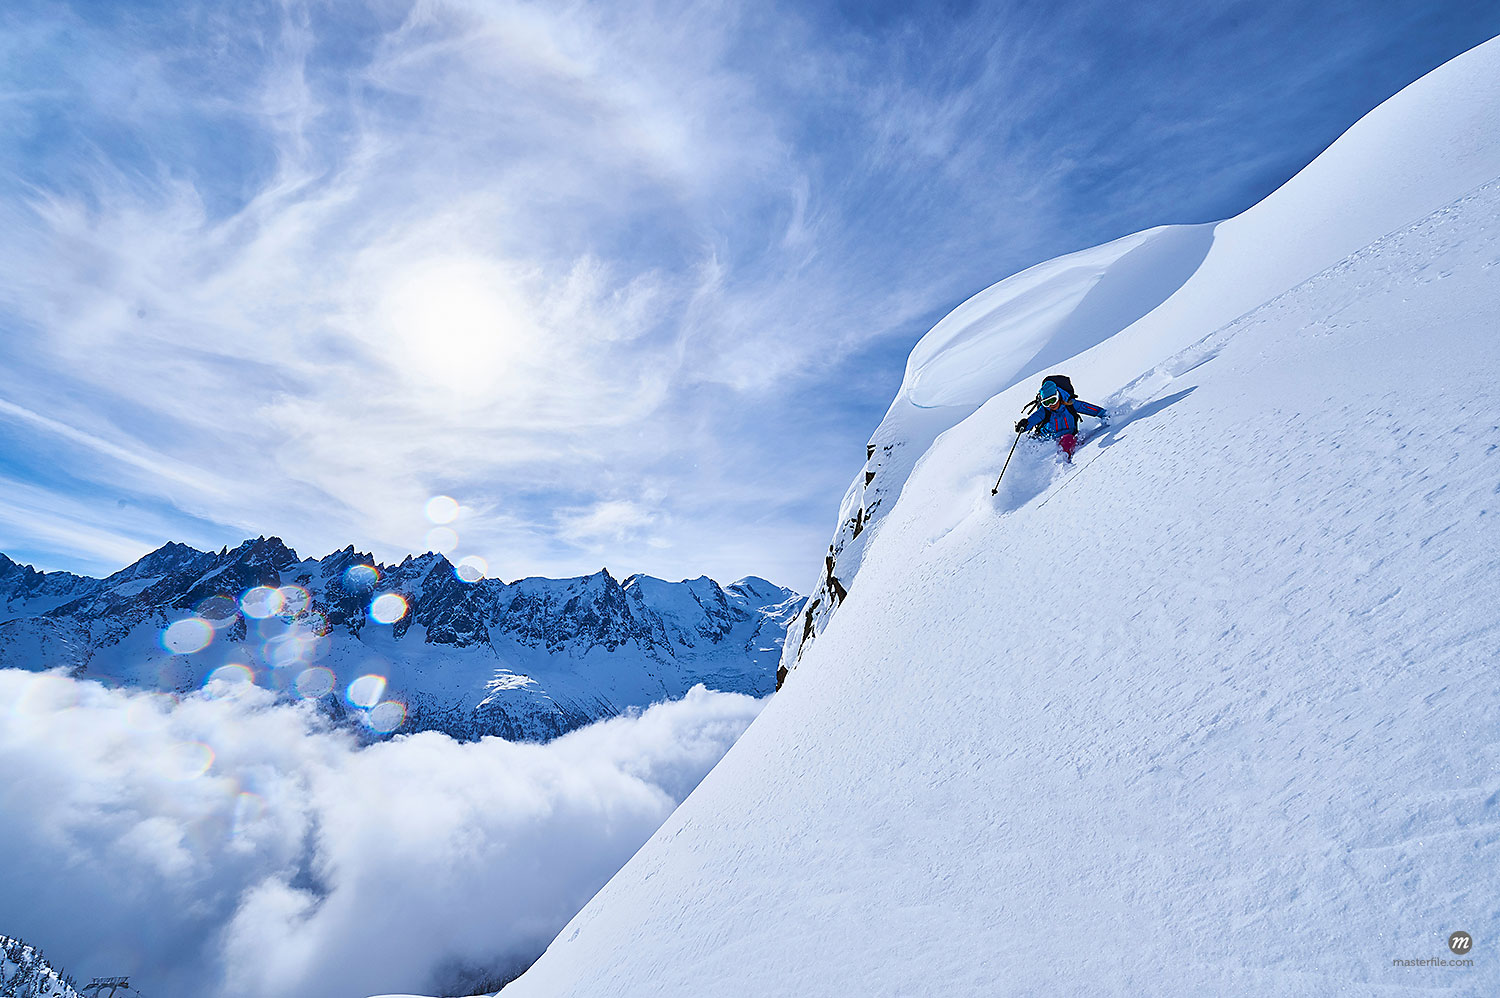 Woman skiing down steep mountainside in Swiss Alps, Gstaad, Switzerland © Masterfile